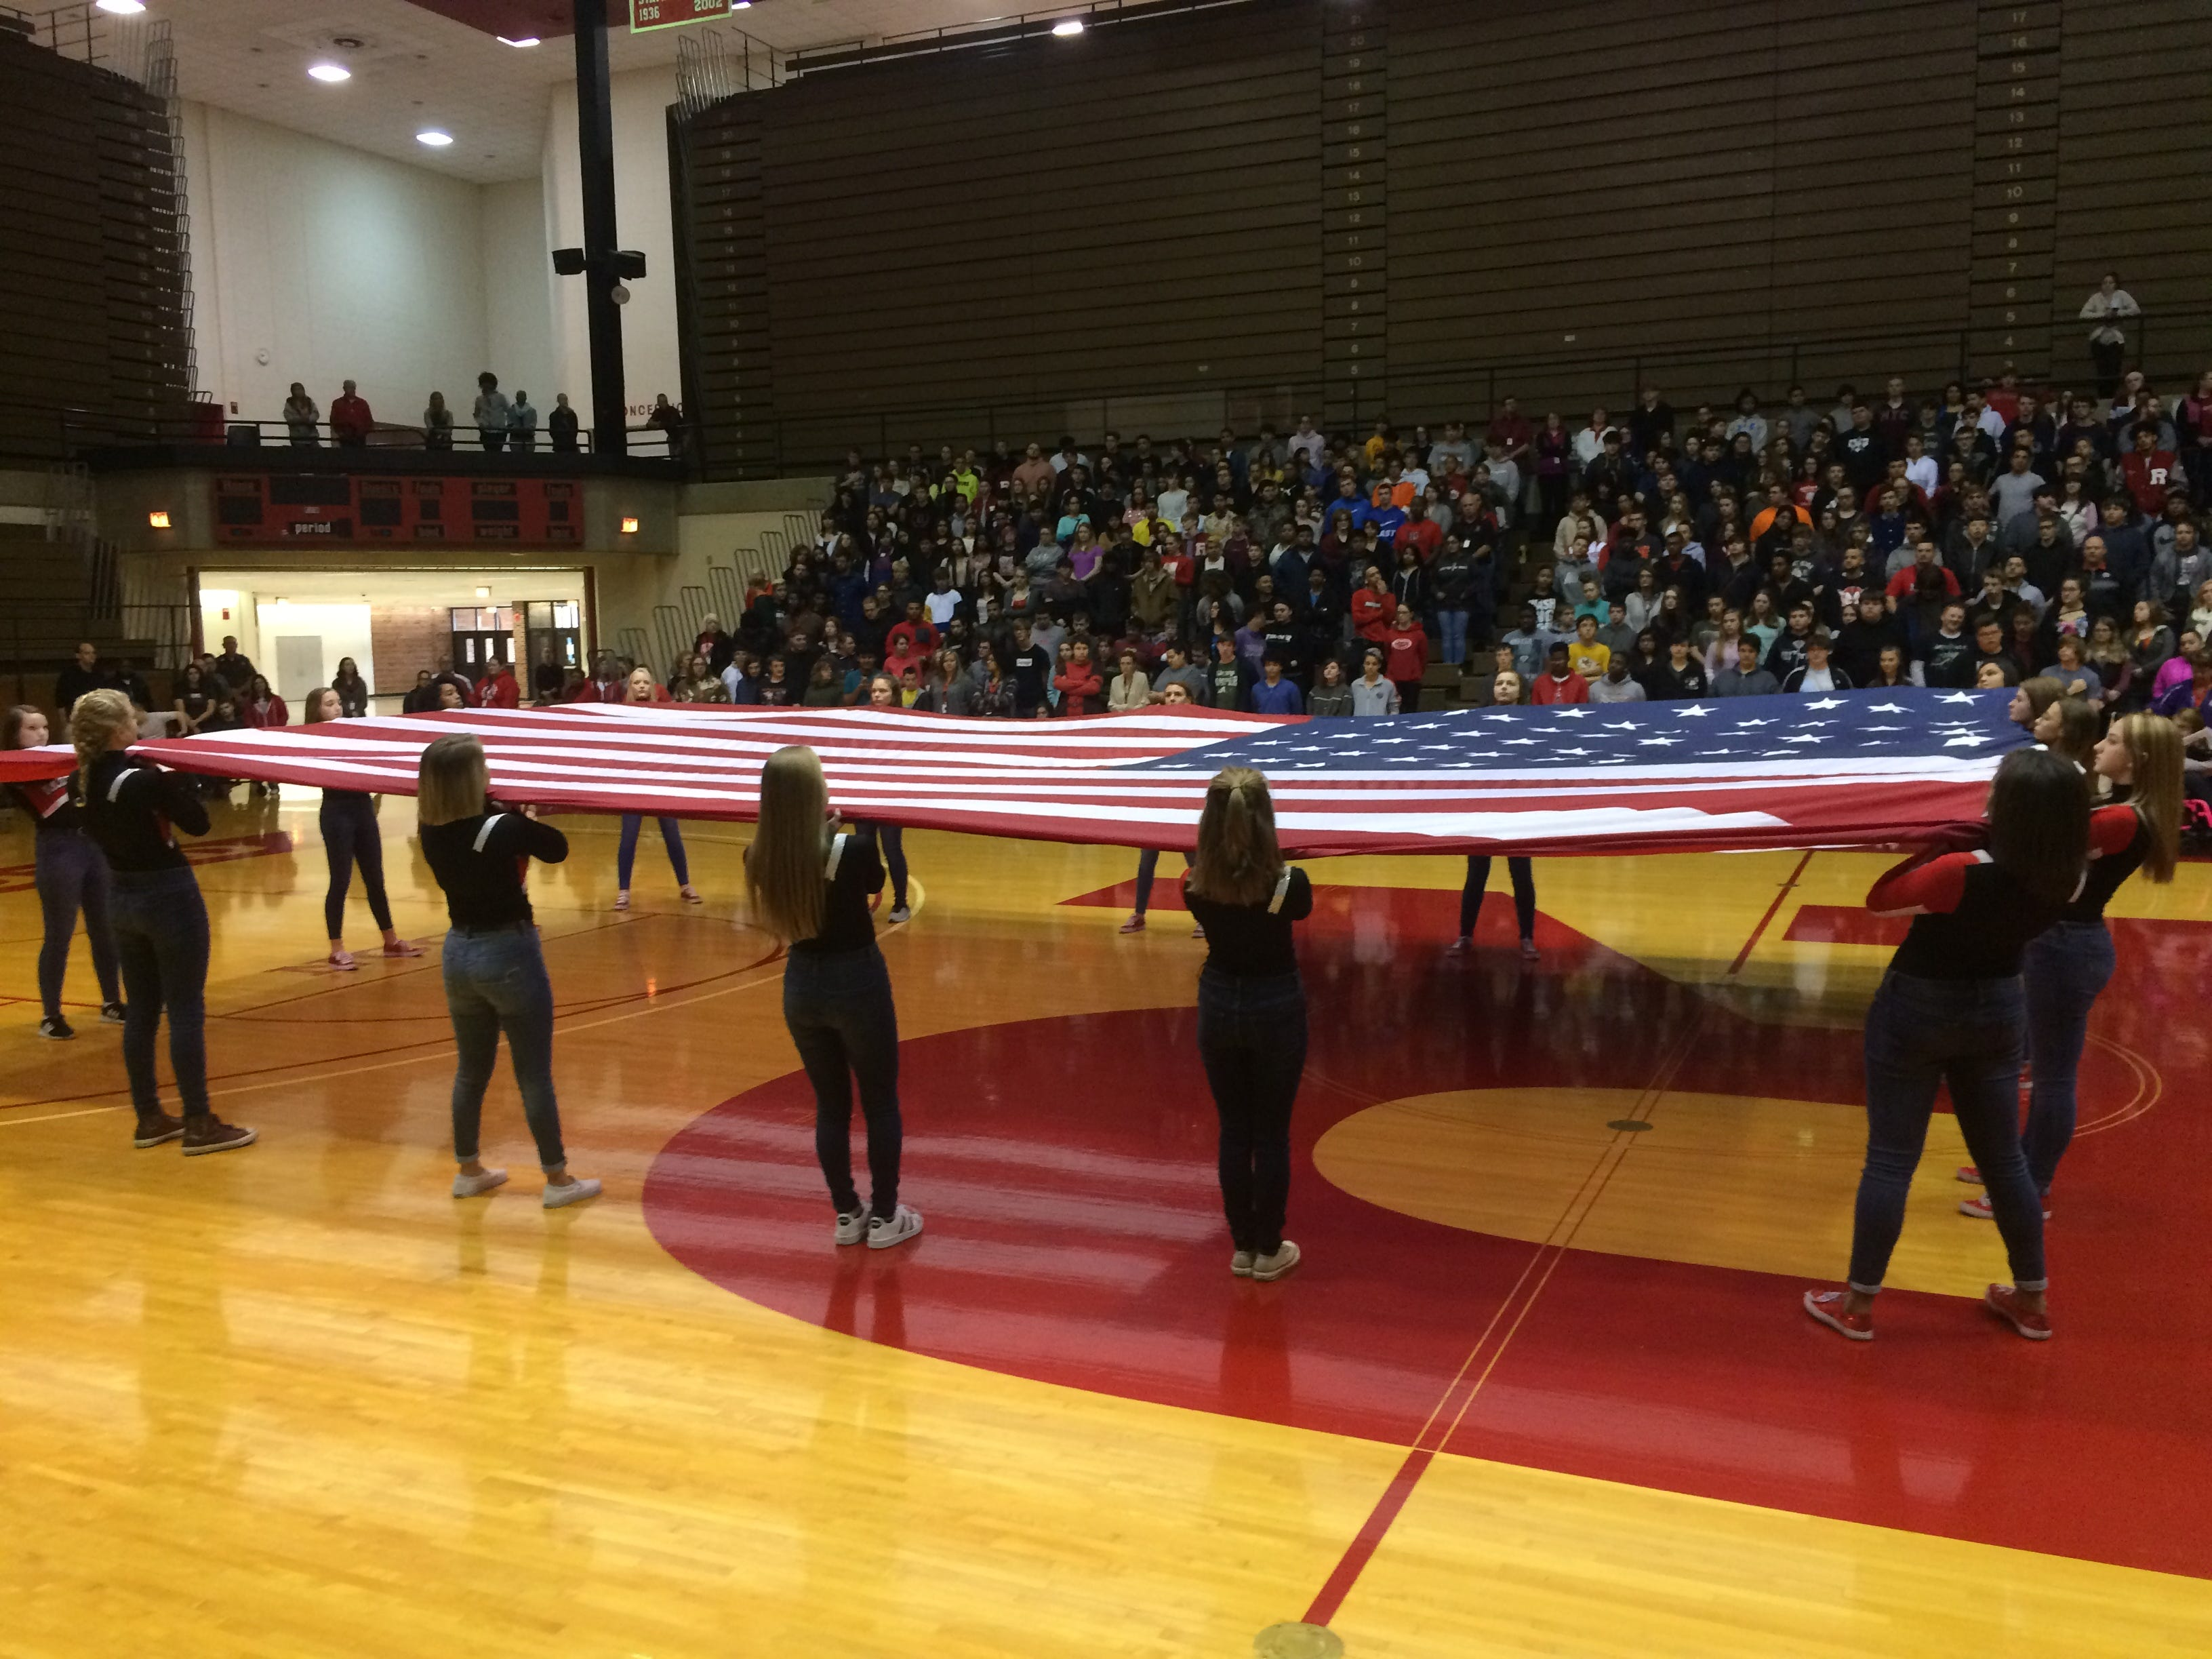 Members of the Richmond High School Devilettes hold a large flag during the playing of taps Friday in Tiernan Center.